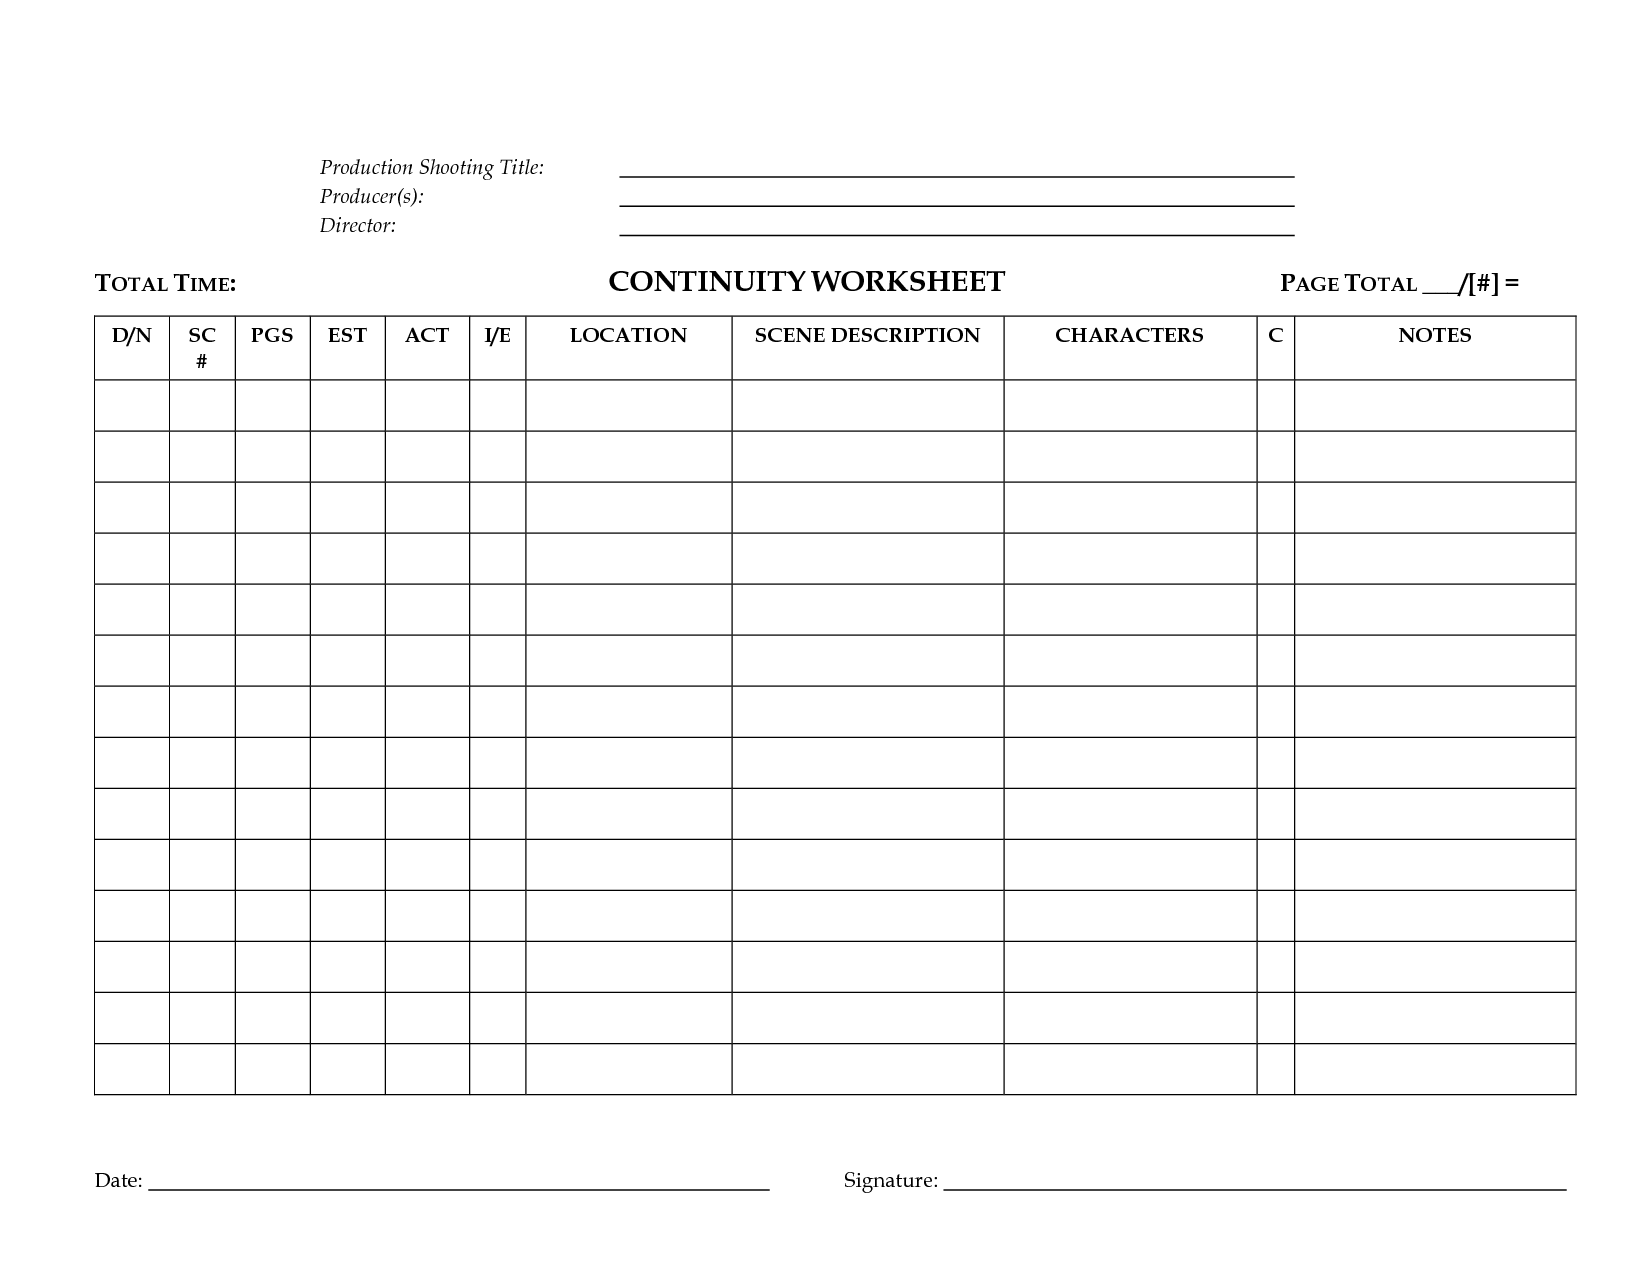 Production Worksheet Template